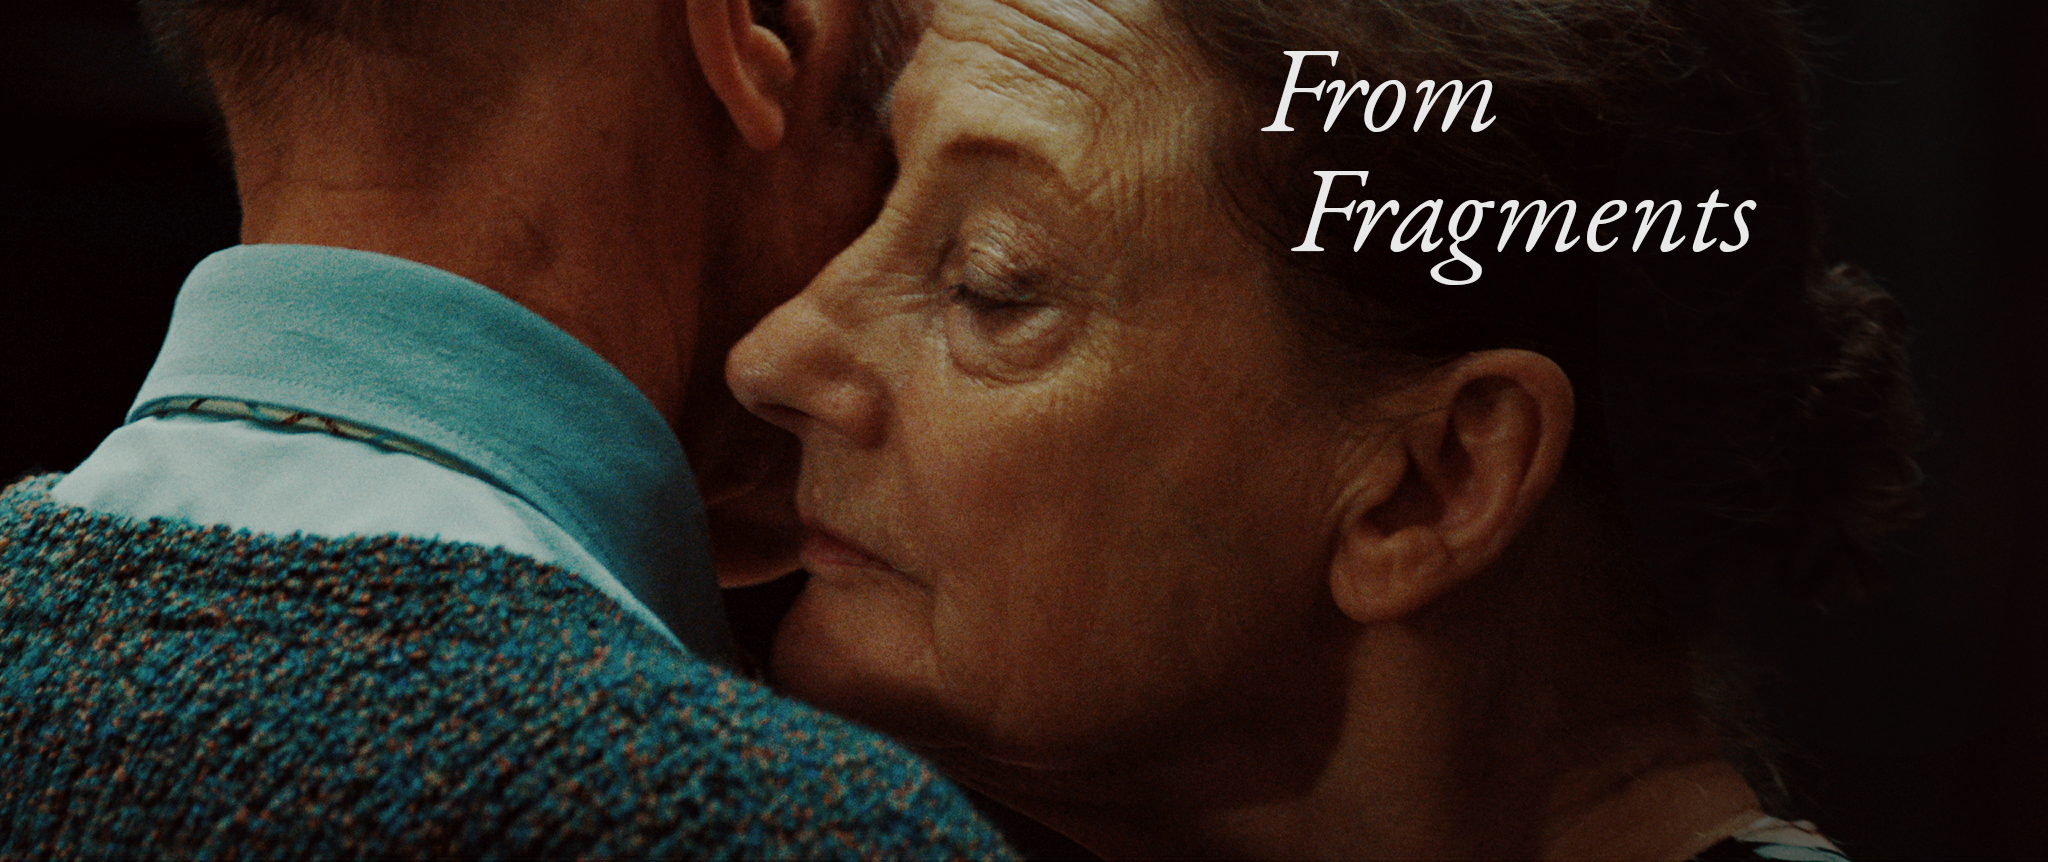 From Fragments - Vimeo Thumbnail.png